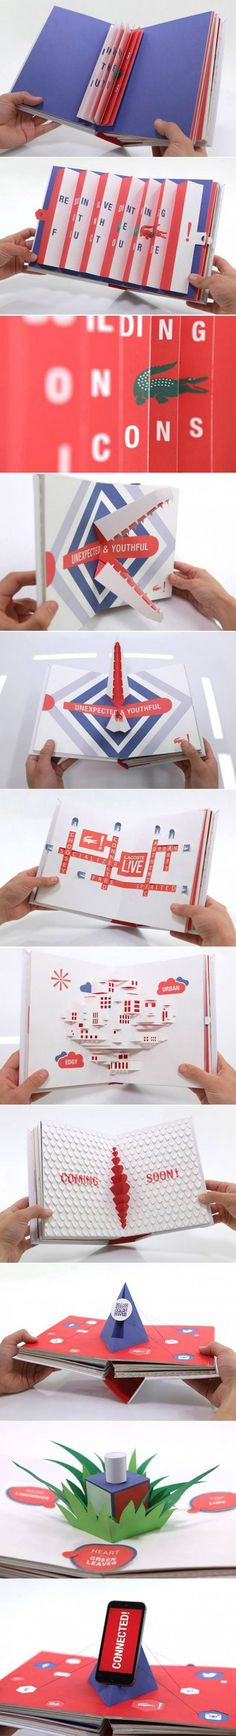 Another interesting idea for the instruction booklet.